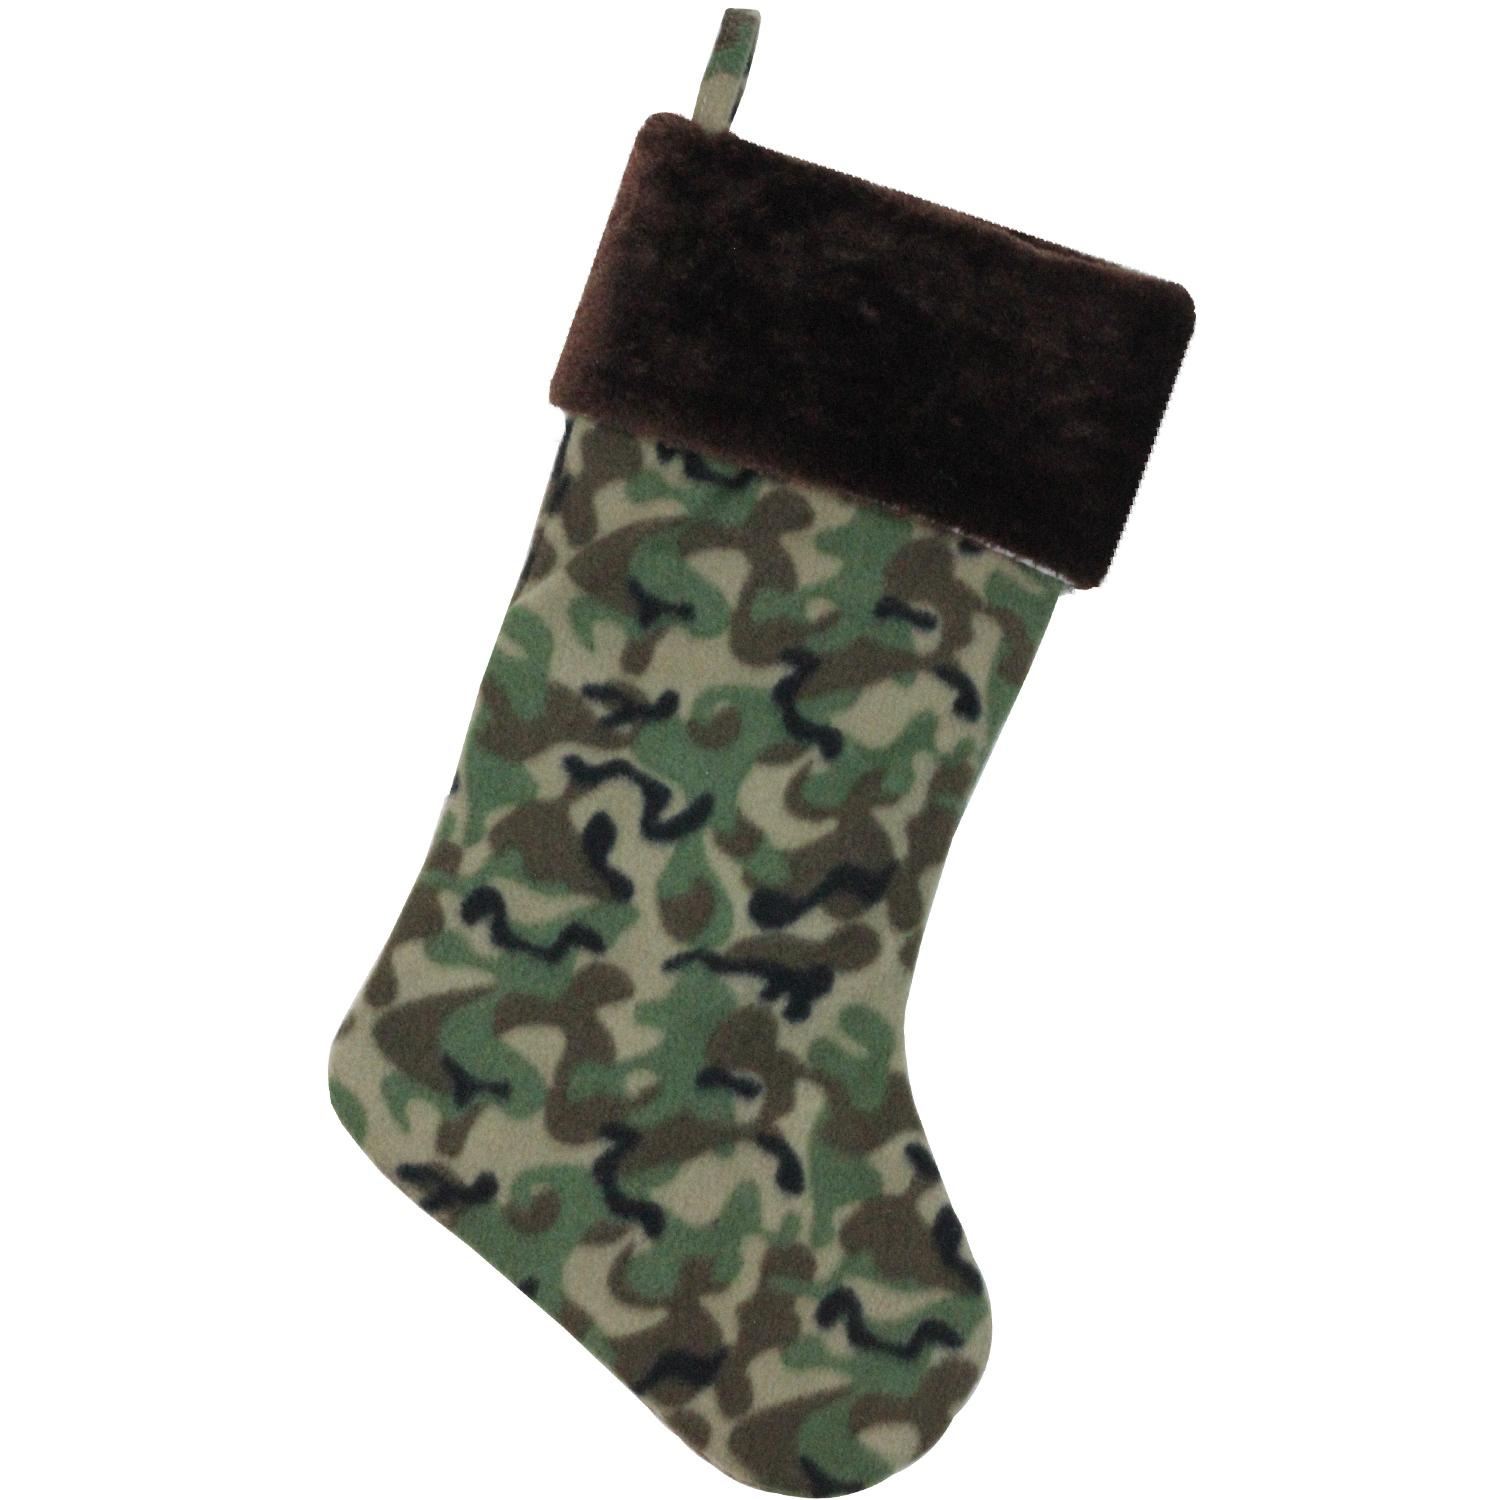 "19"" Brown and Green Camouflage Christmas Stocking with Brown Cuff"